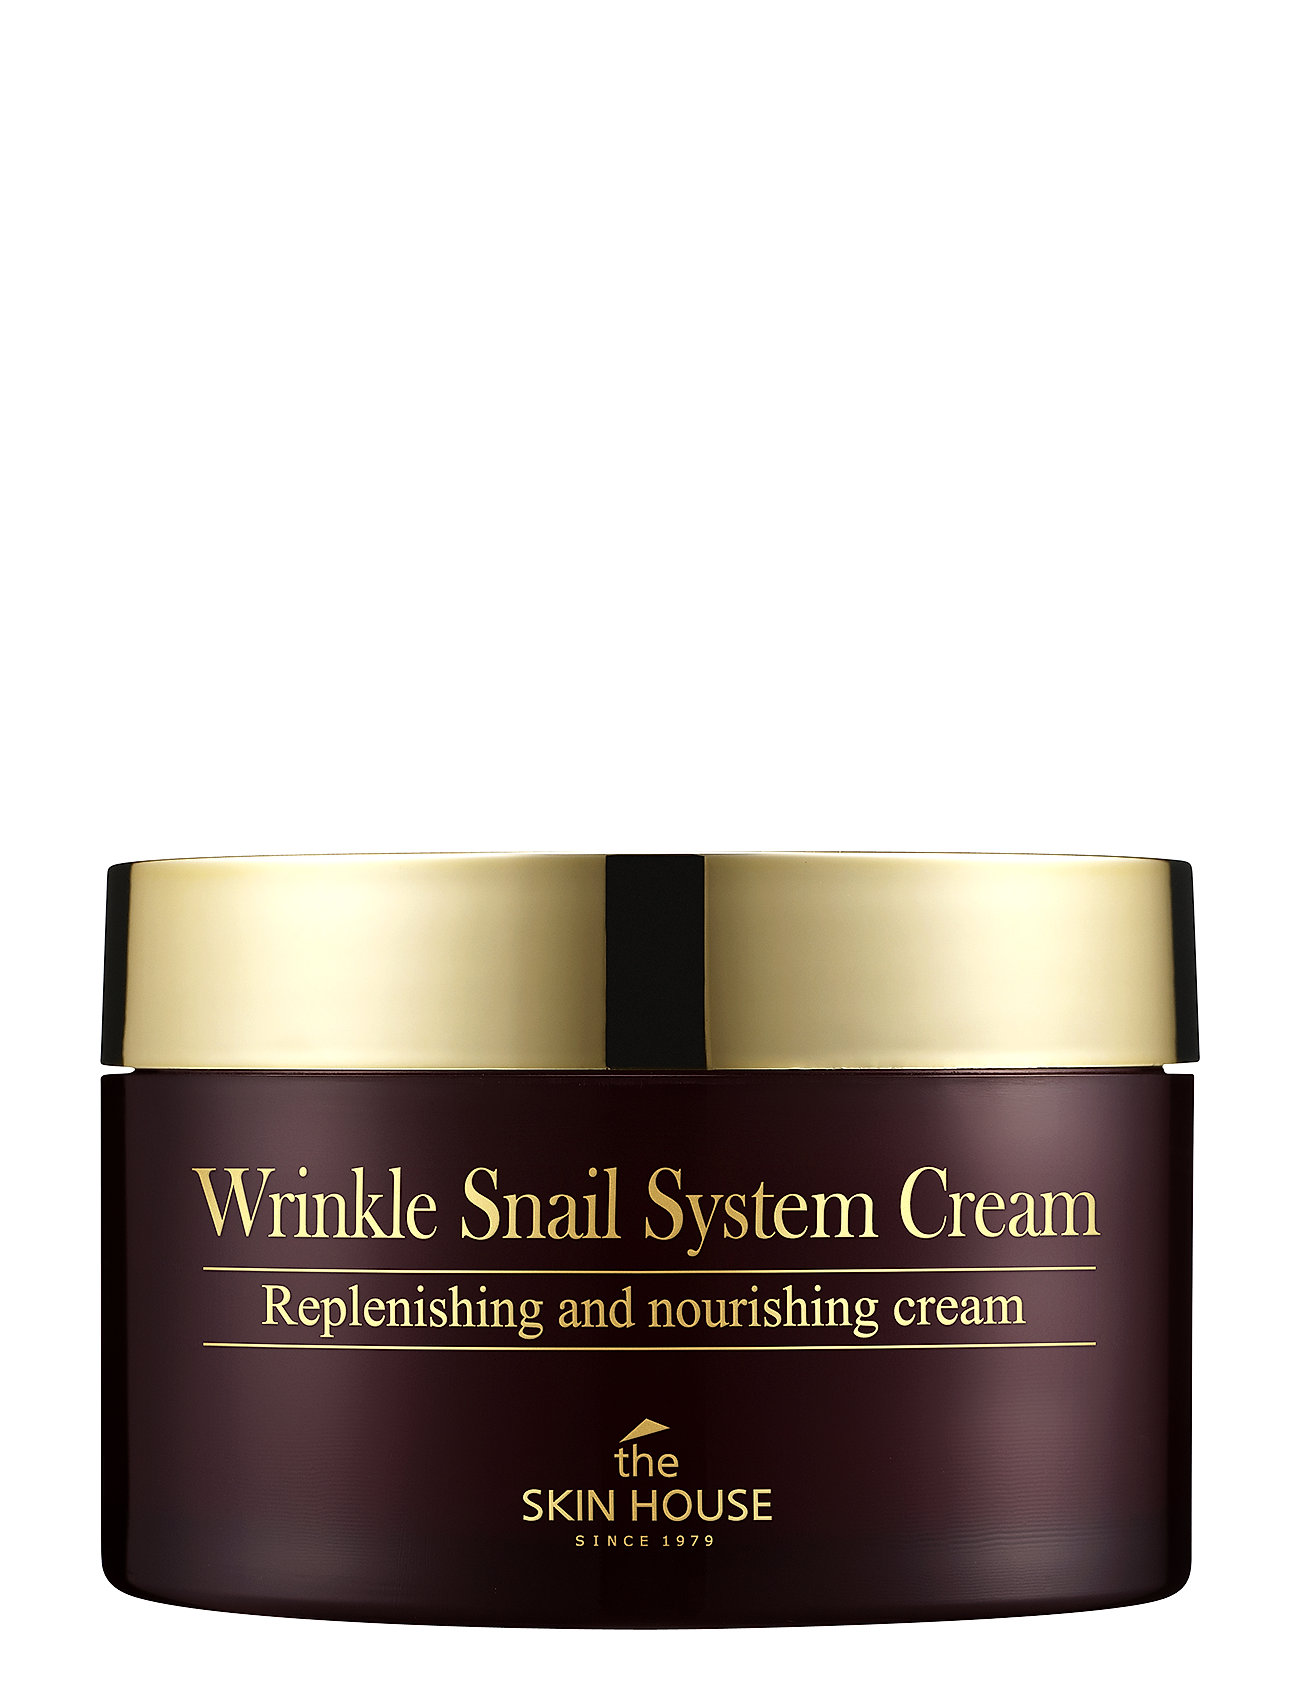 THE SKIN HOUSE THE SKIN HOUSE Wrinkle Snail System Cream - CLEAR